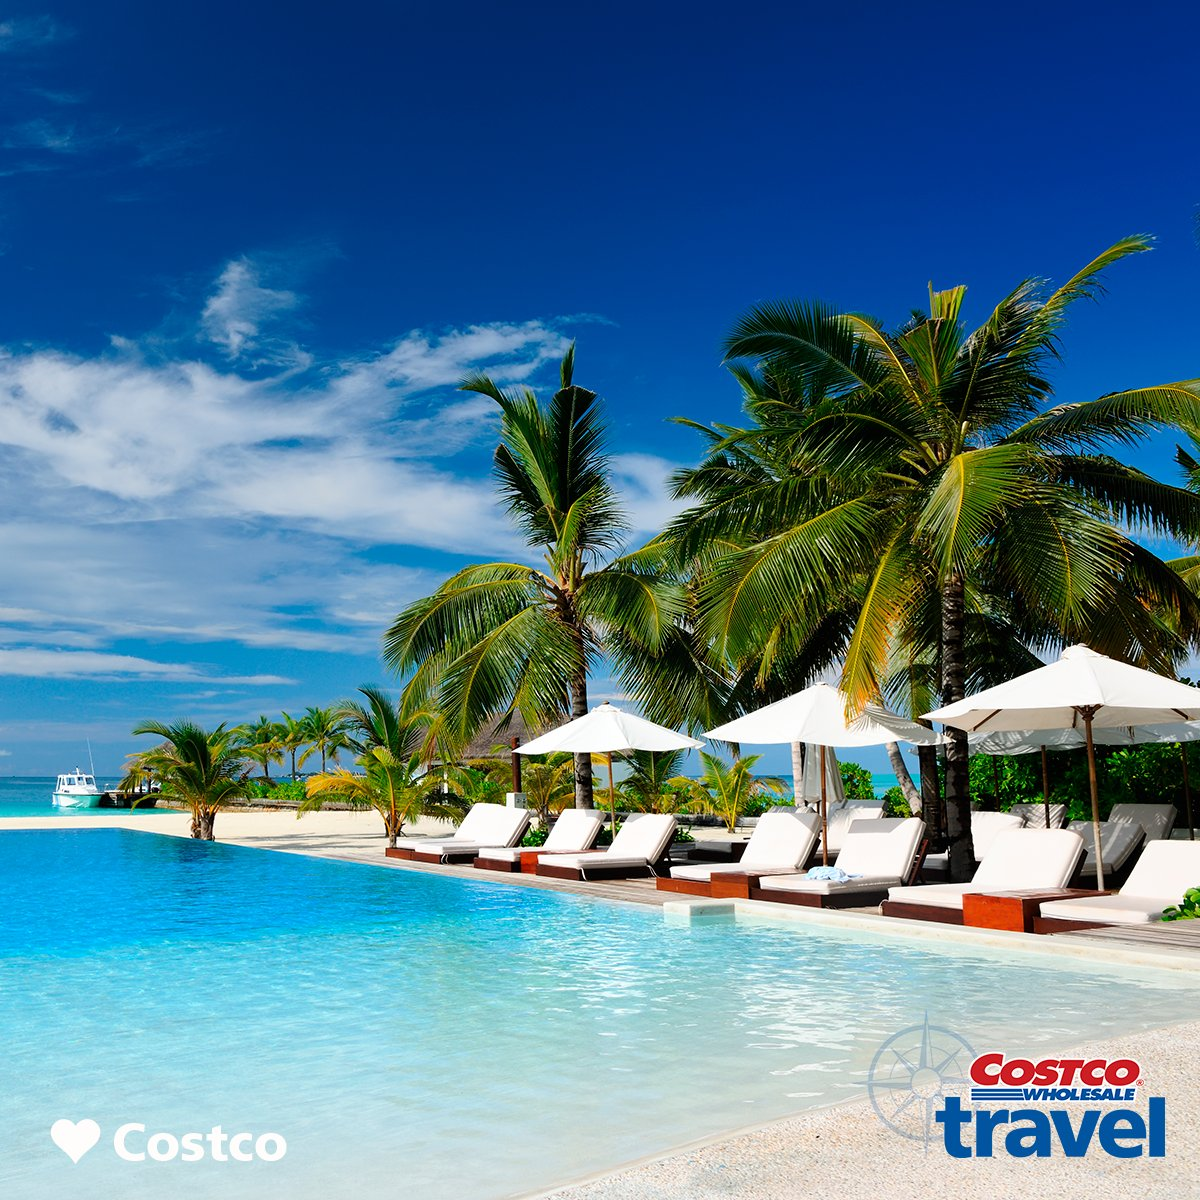 Costco Canada On Twitter Topselling Vacations And Cruises At - Costoc travel